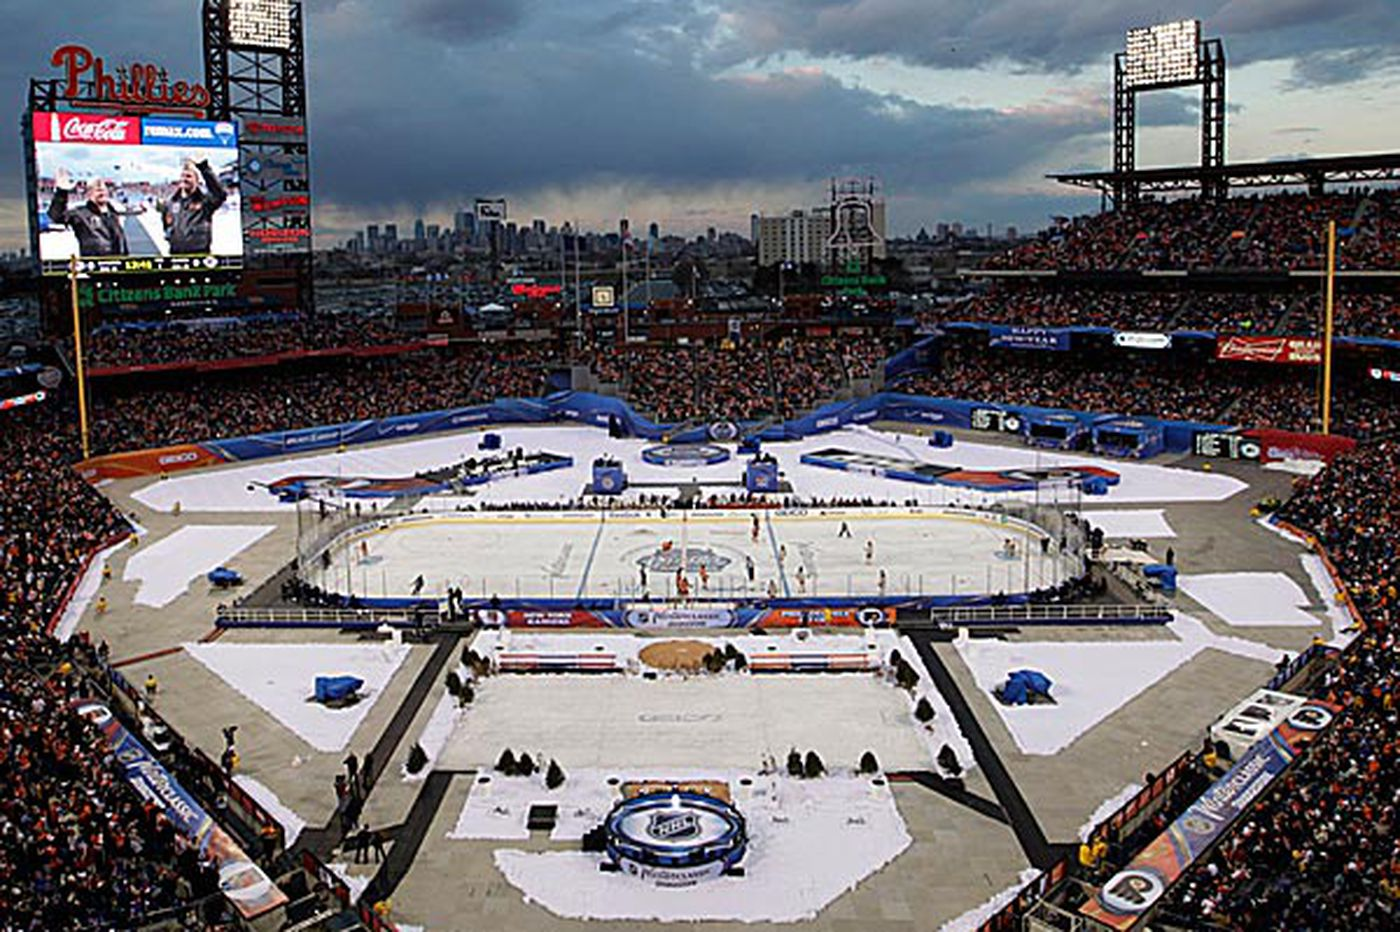 NHL says talk of Flyers in 2015 Winter Classic is premature